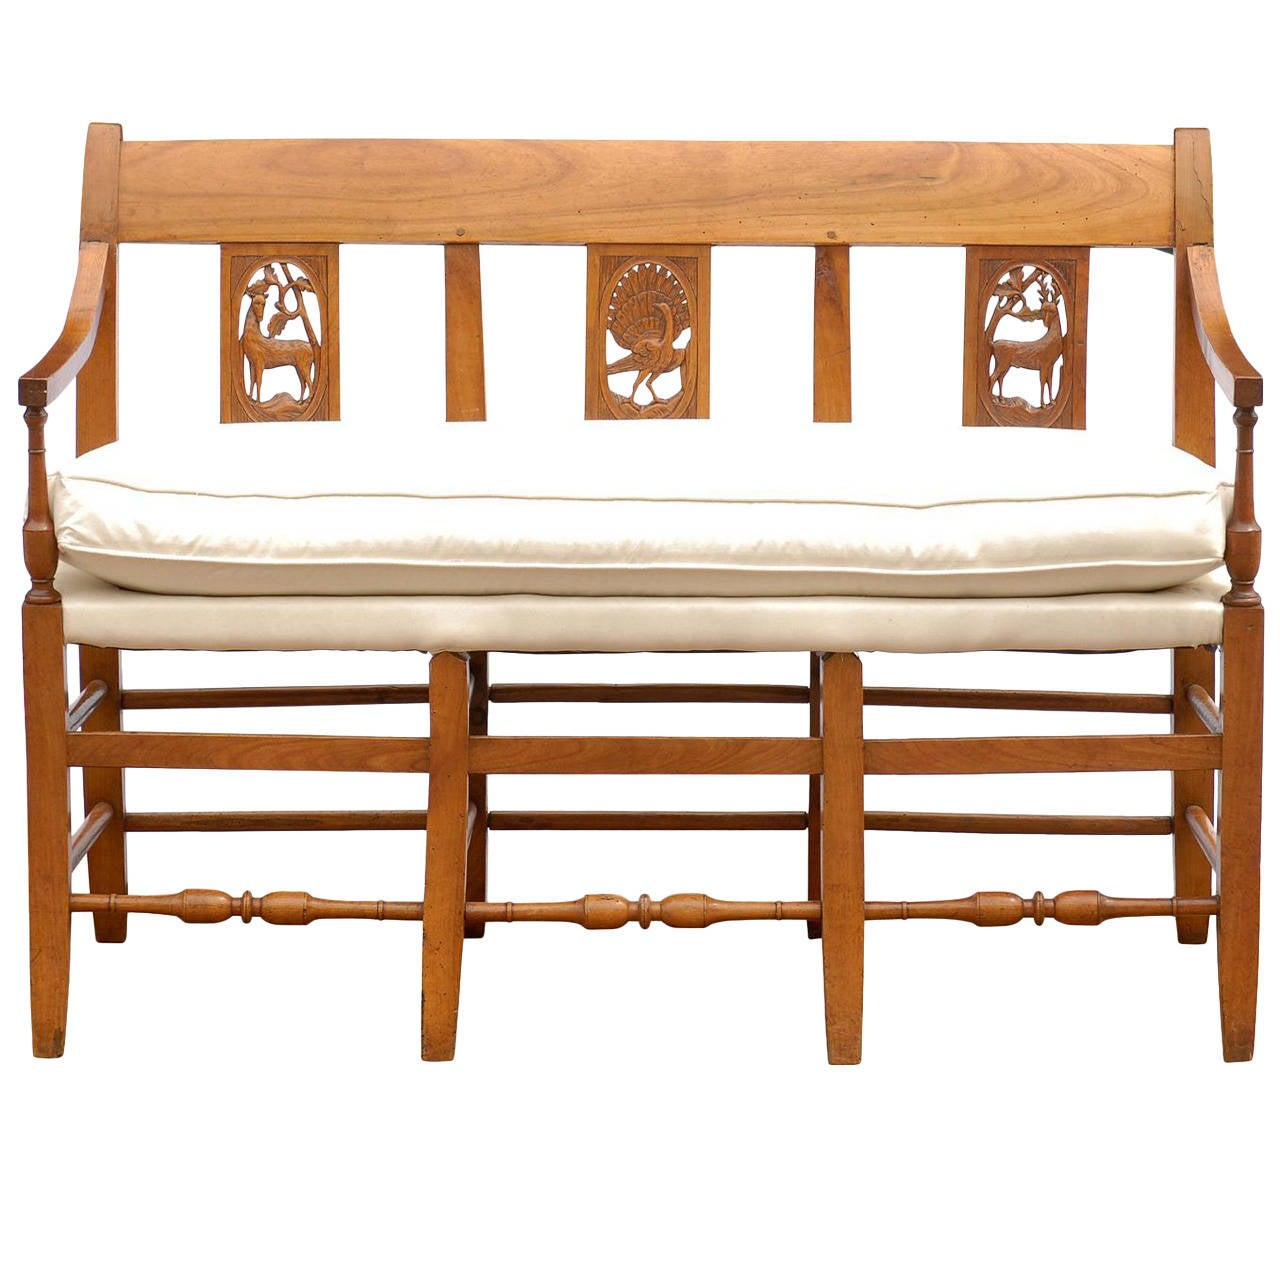 French Mid 19th Century Wooden Bench With Carved Back And